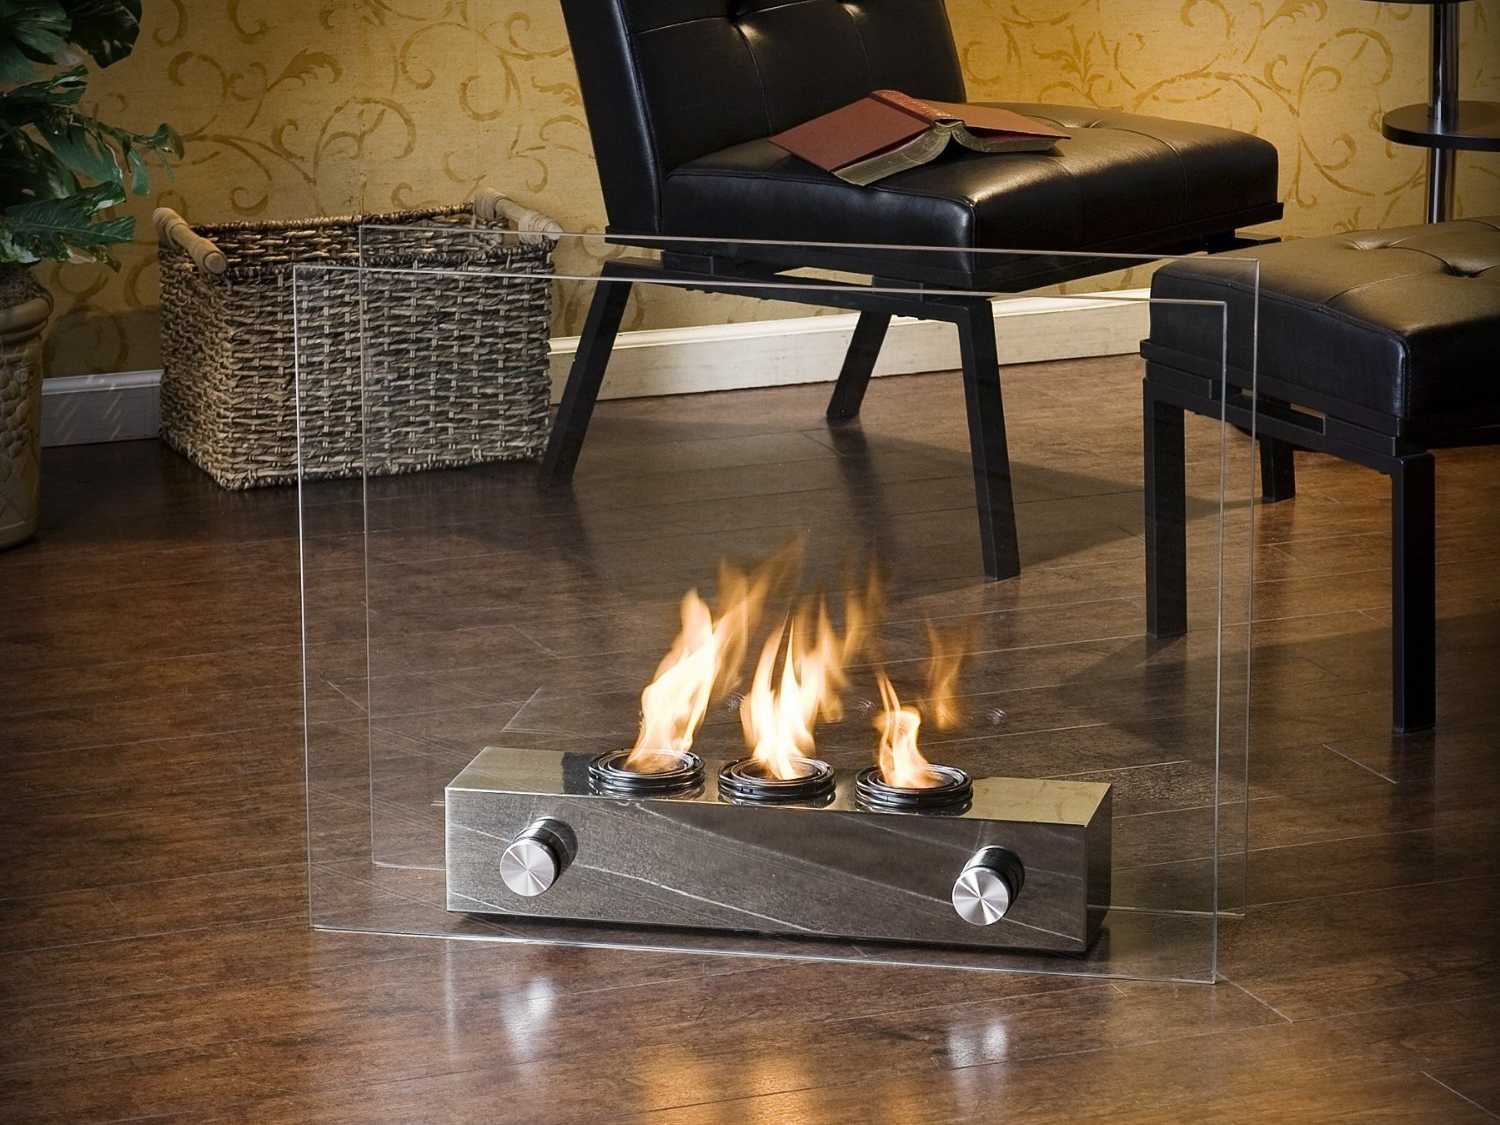 Portable Fireplace. Source: Business Insider.